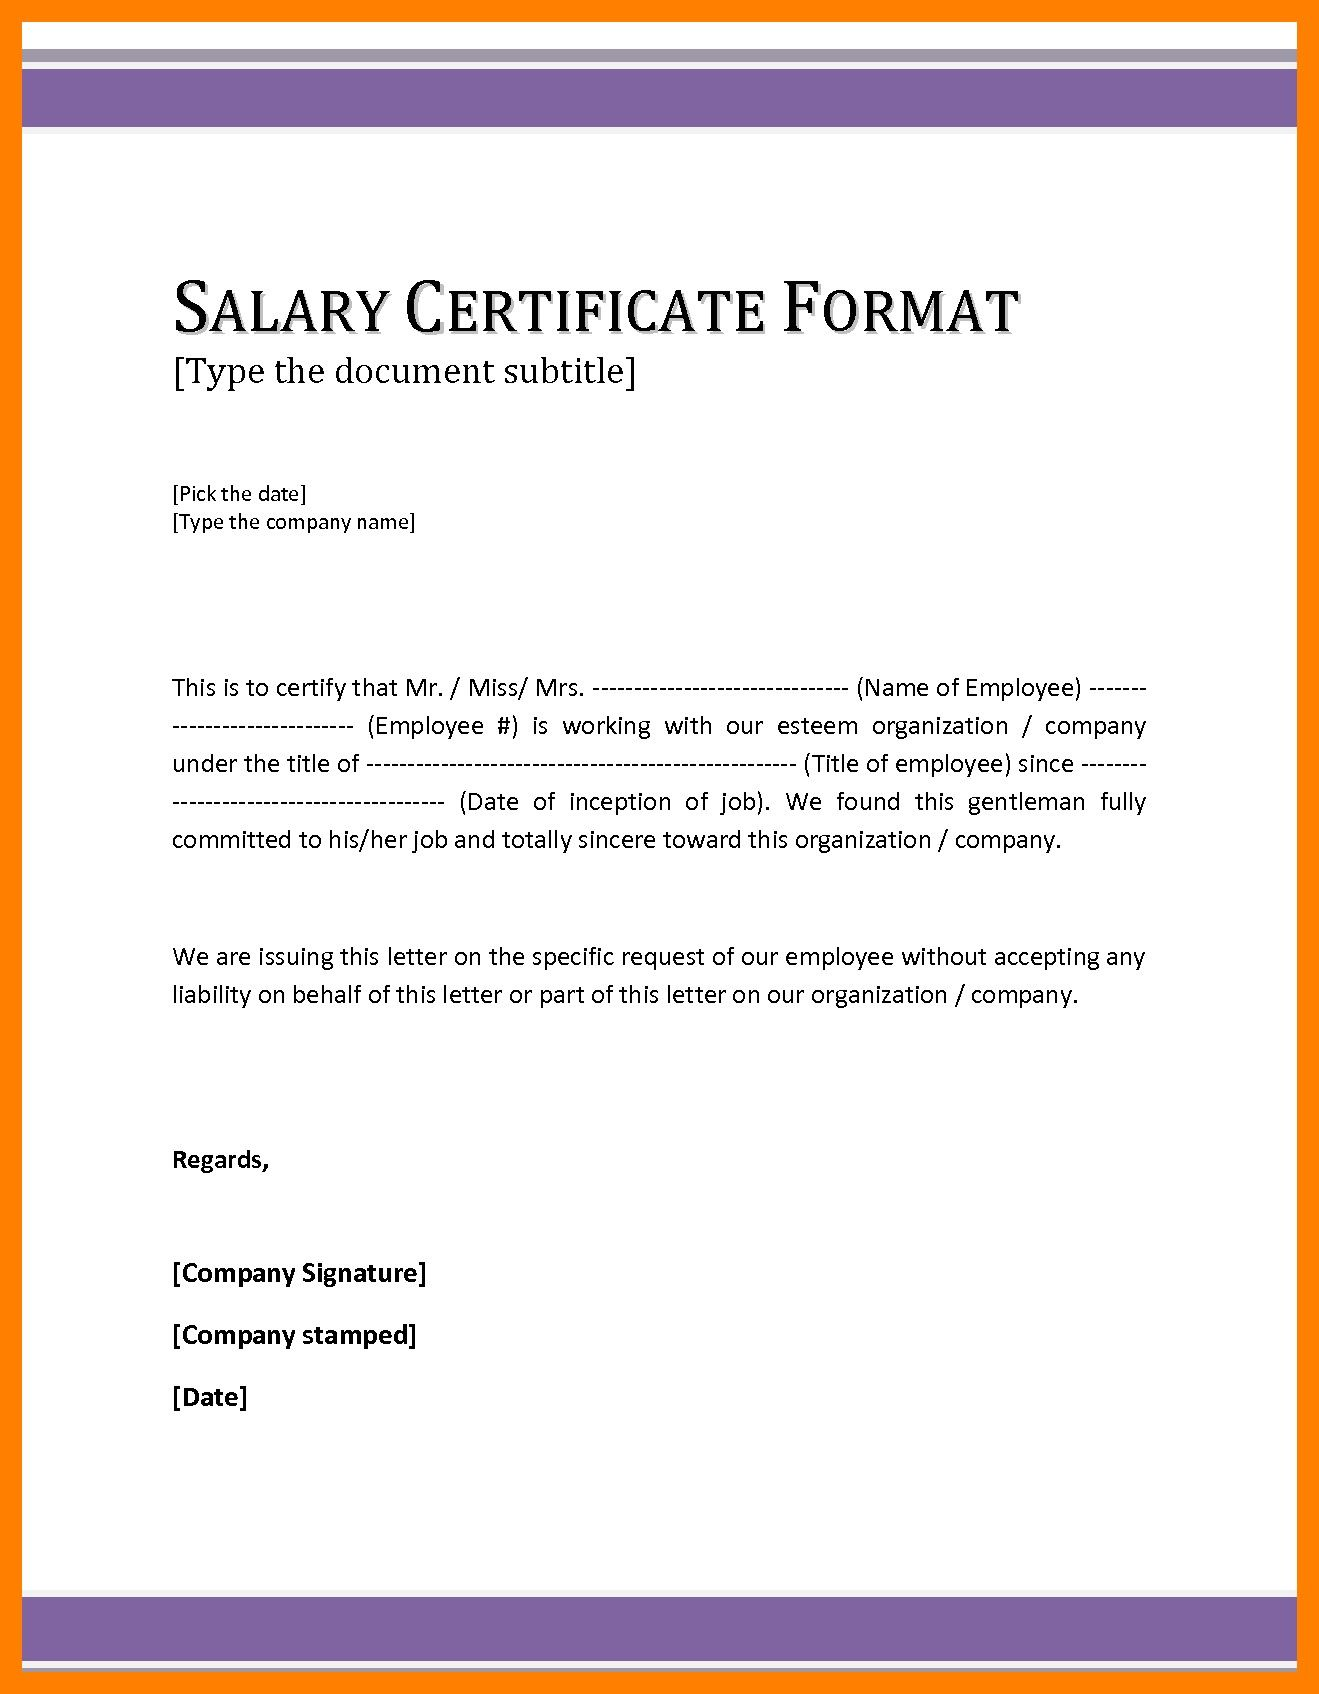 salary certificate letter Google Search Certificate